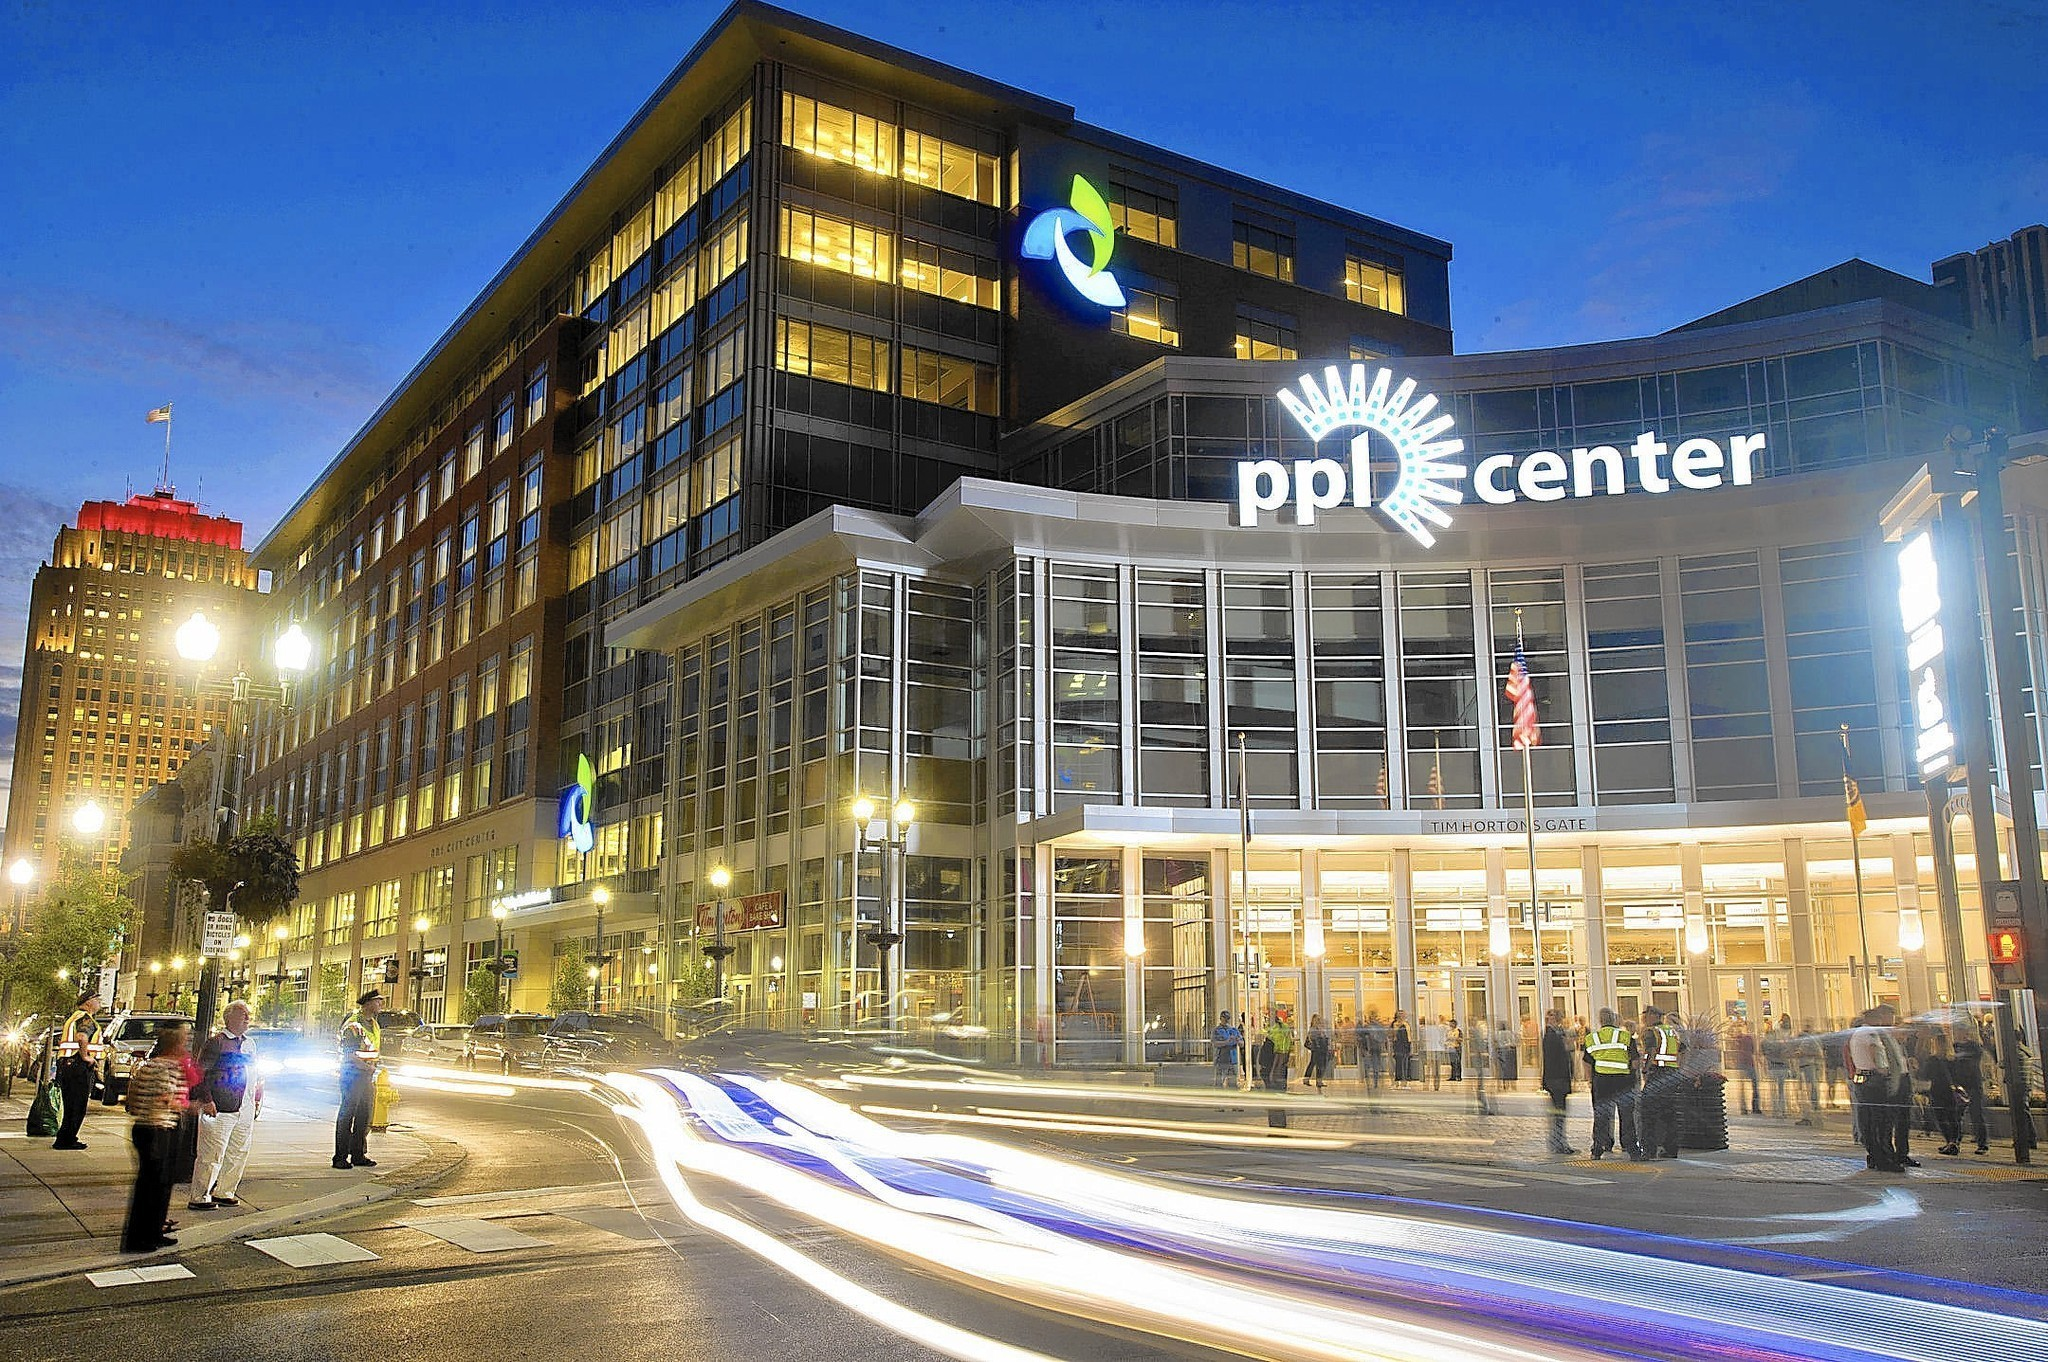 Allentown S Ppl Center Offers Major League Quality Thanks